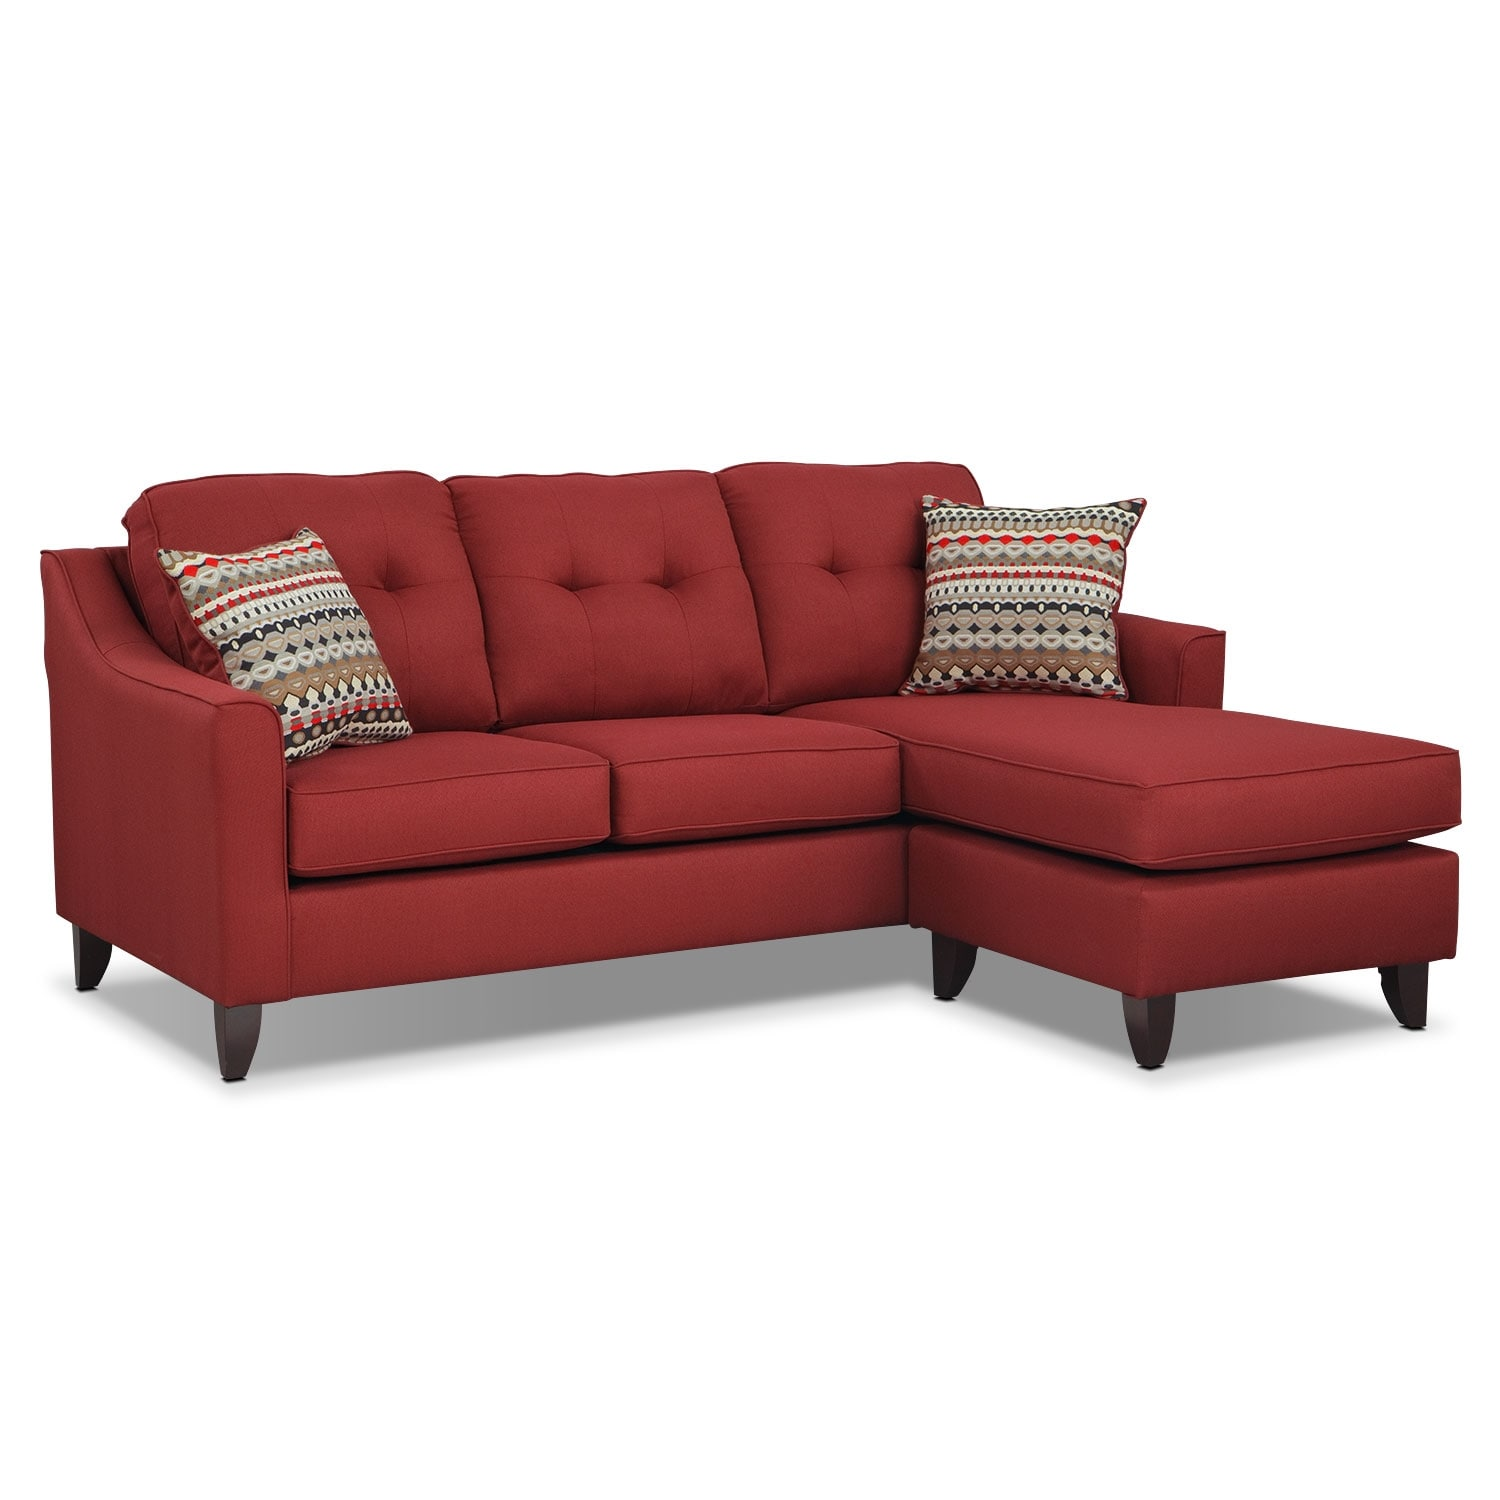 Living Room Furniture - Marco Chaise Sofa - Red